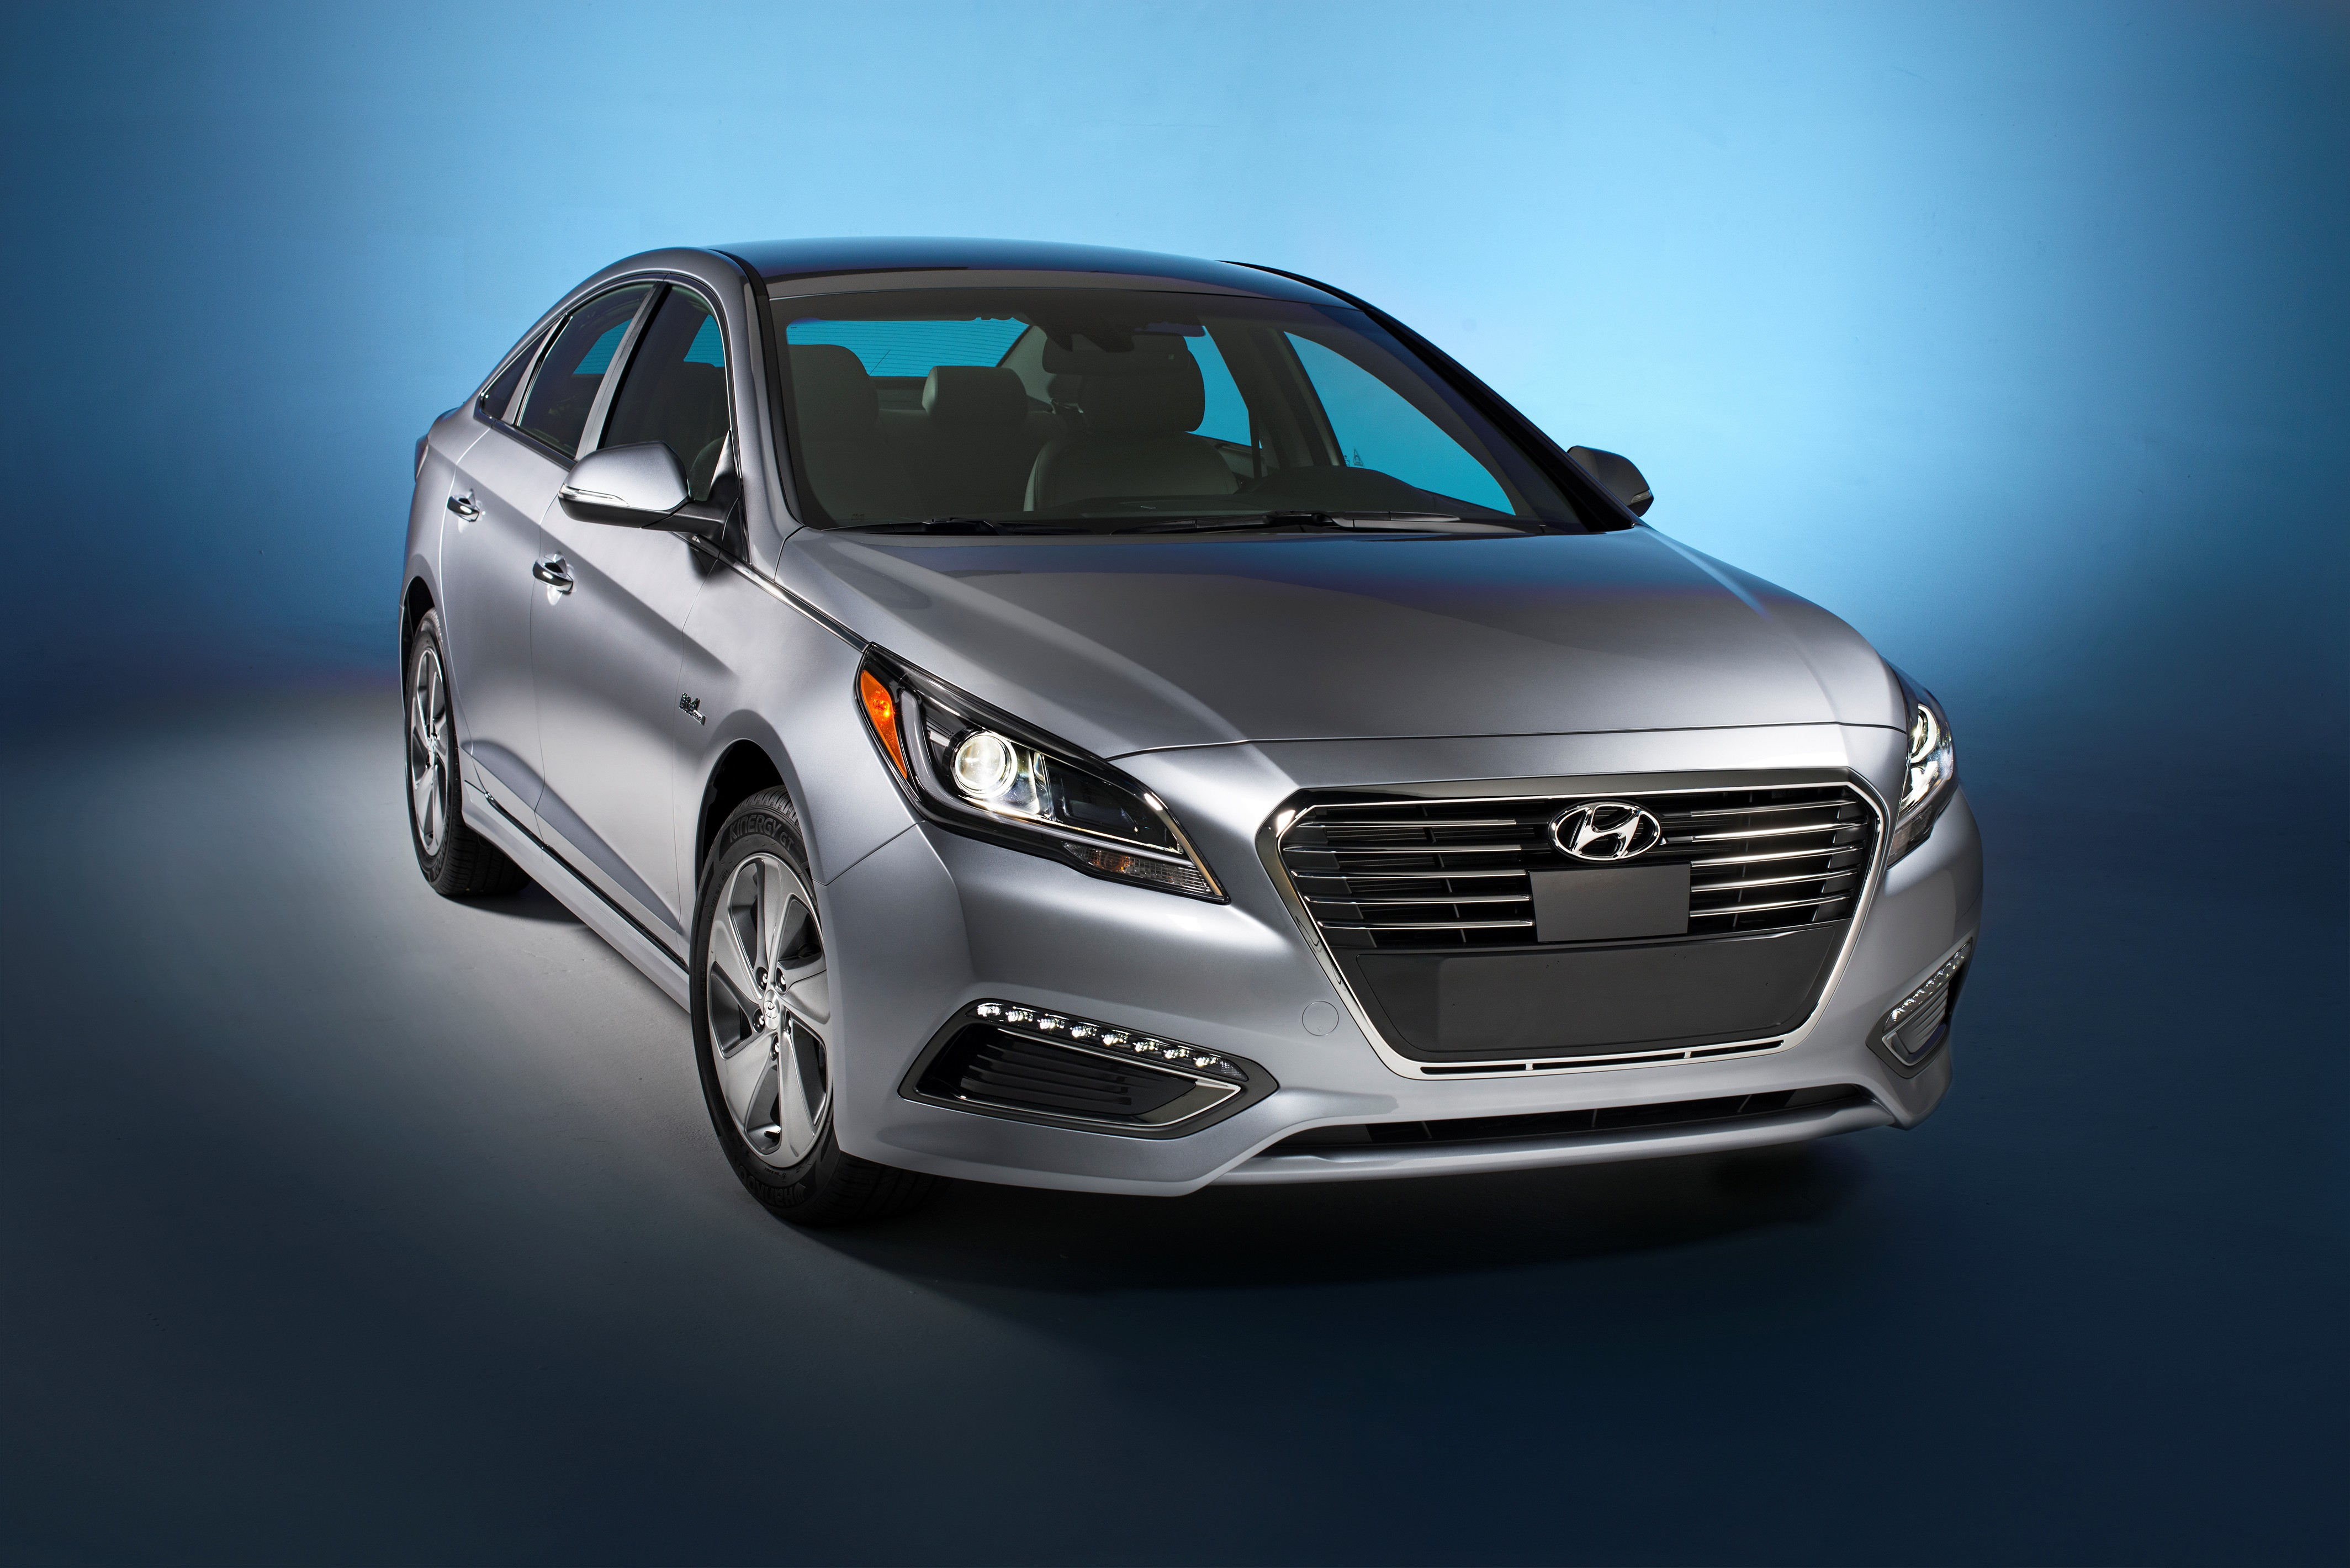 42746_2016_Hyundai_Sonata_Plug_in_Hybrid_Electric_Vehicle_PHEV_Front_Exterior.jpg